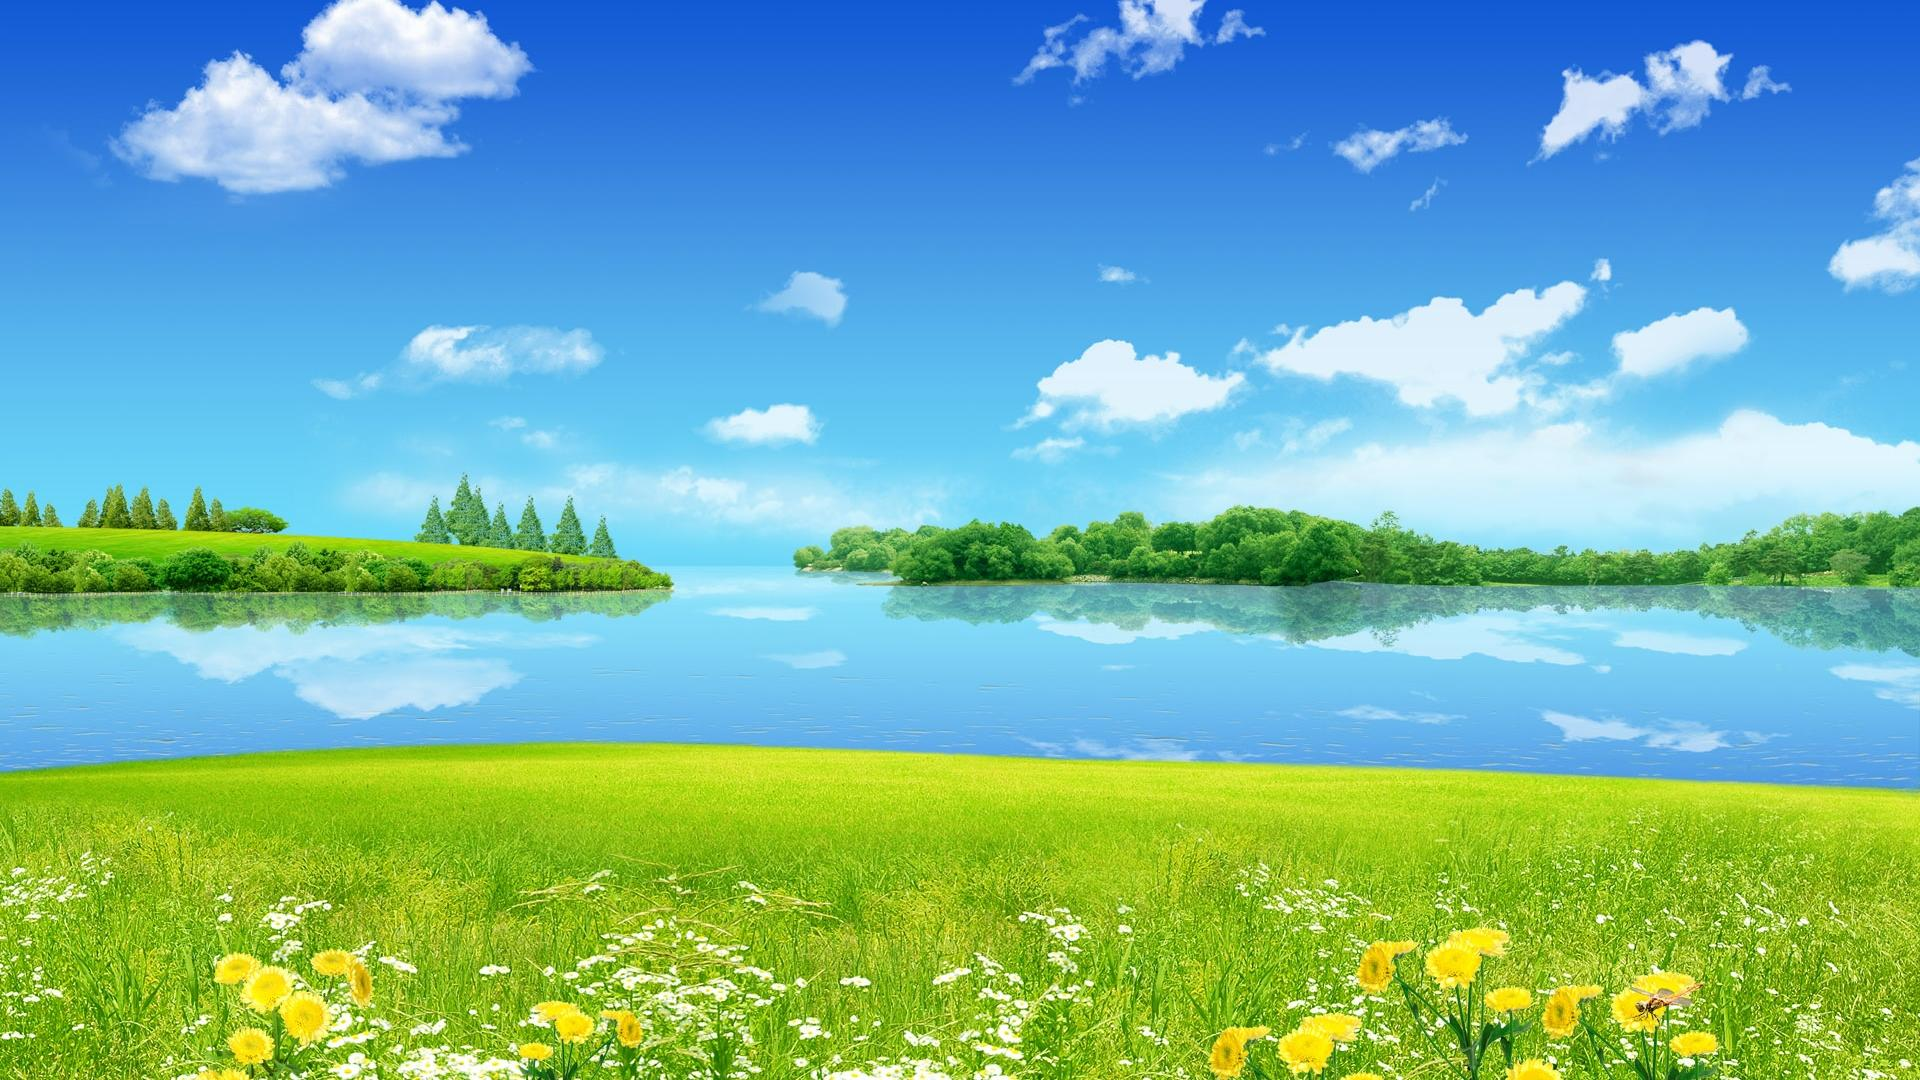 Summer Desktop Wallpapers Top Free Summer Desktop